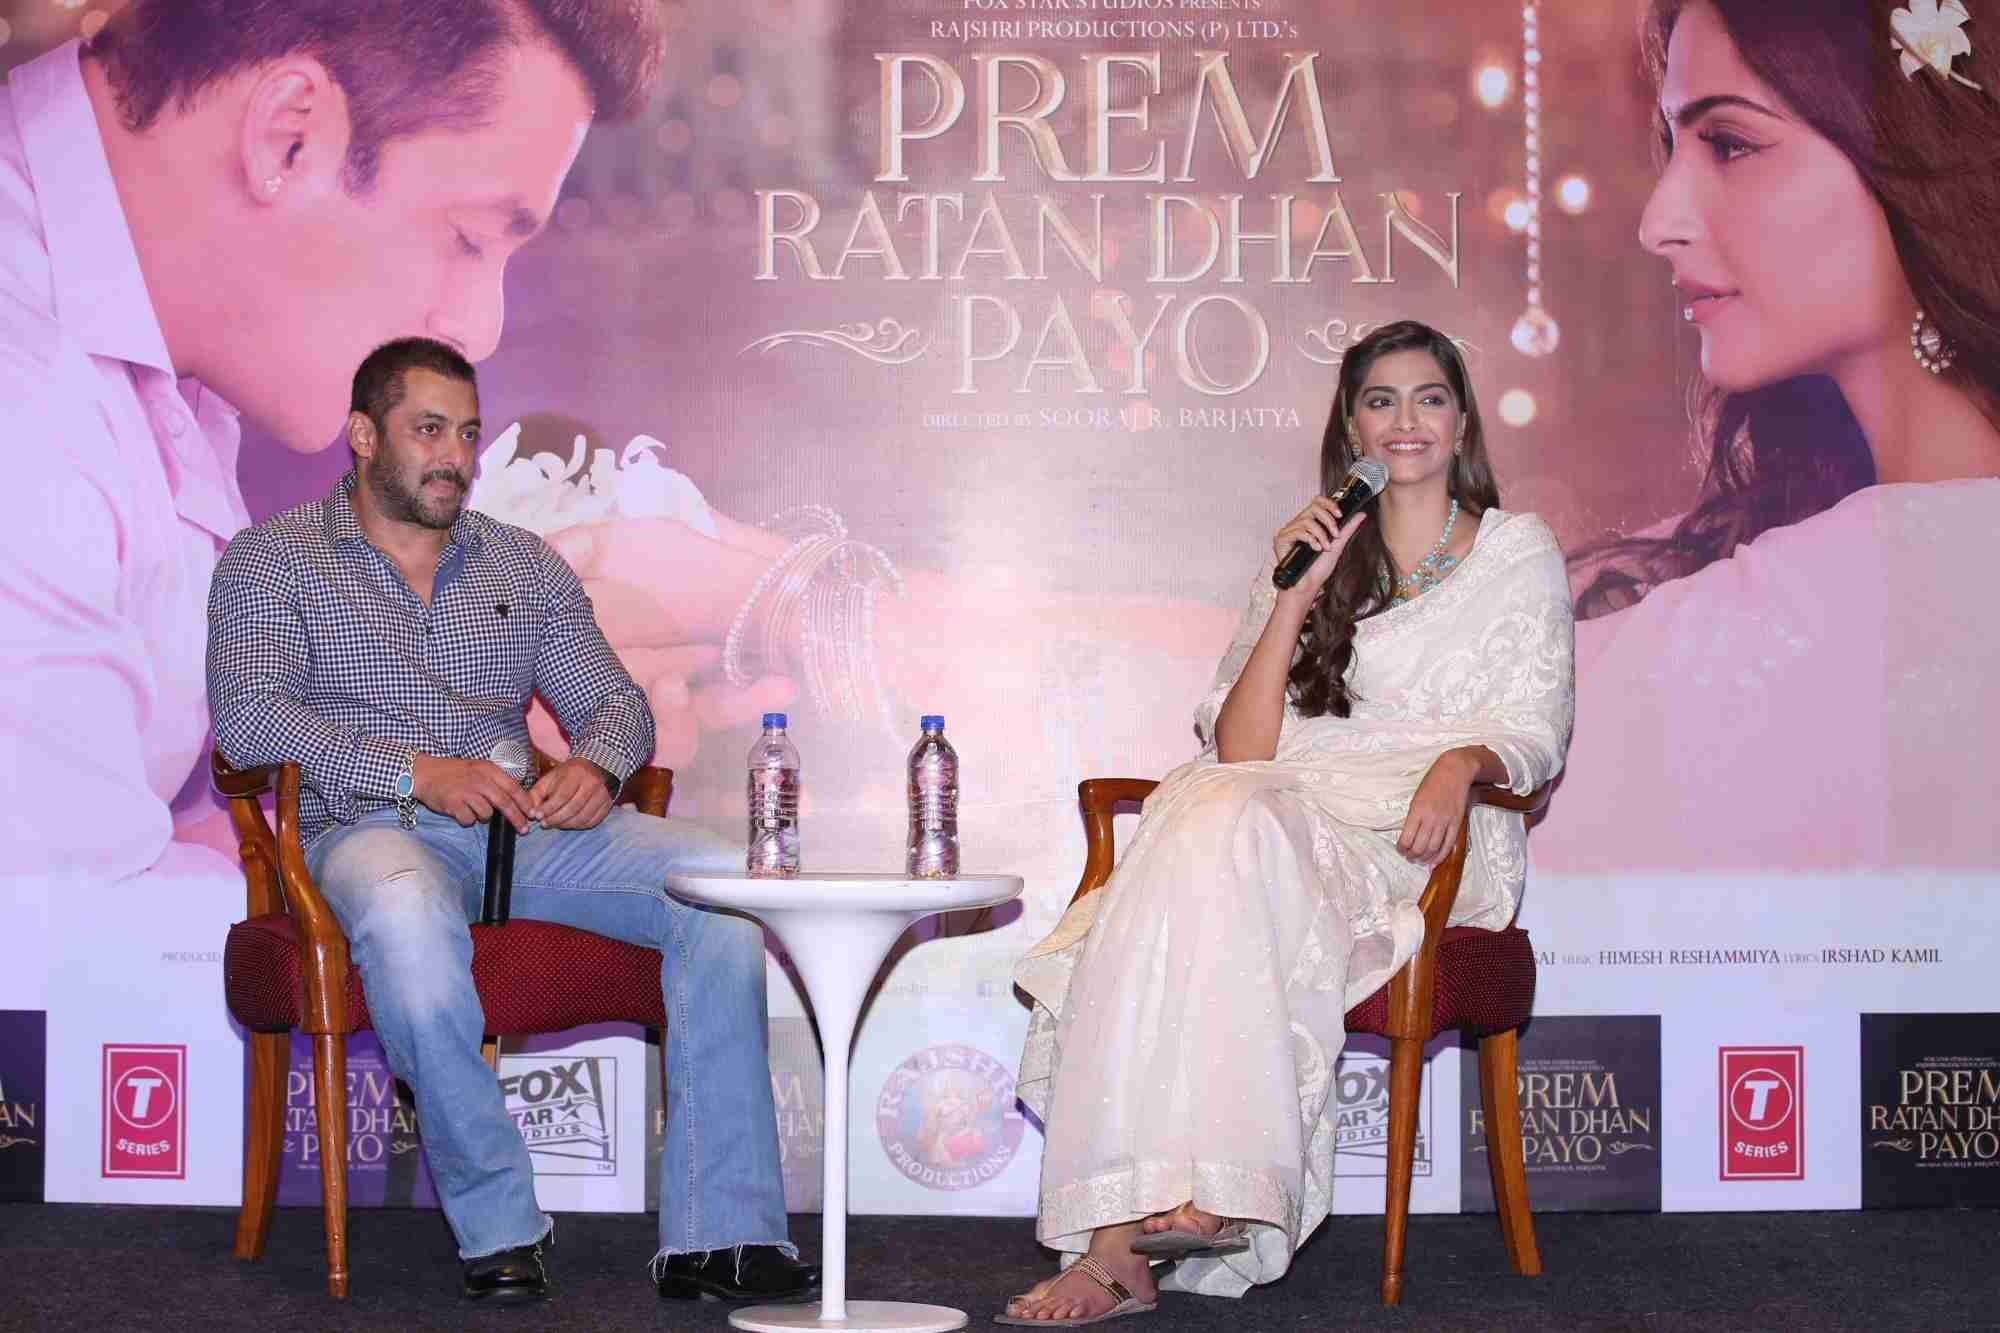 Prem Ratan Dhan Payo Movie Press Conference Photo Gallery